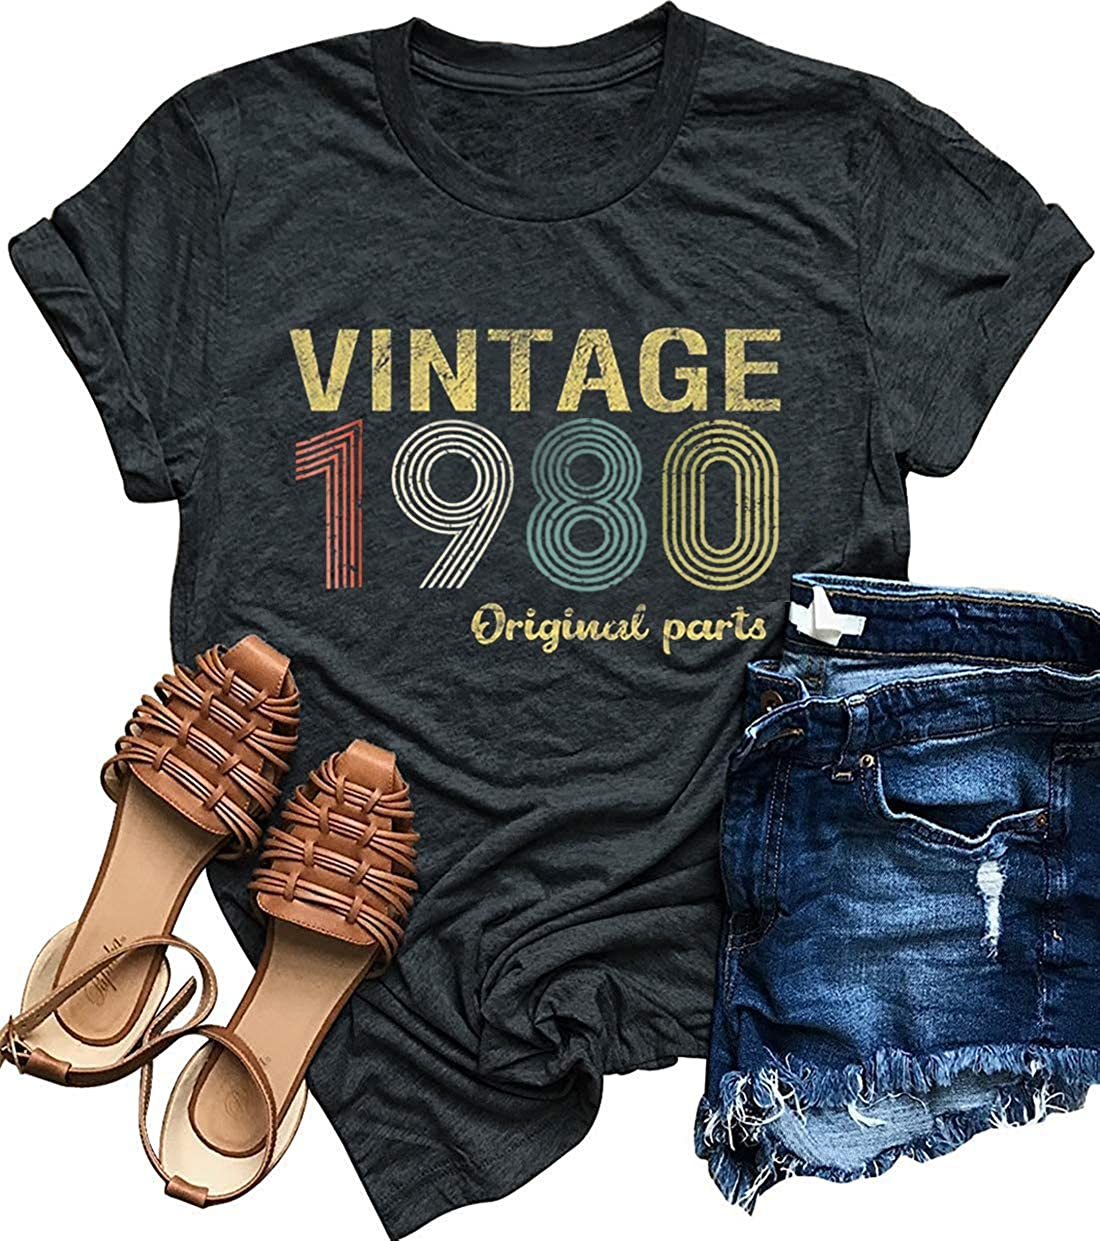 40th Birthday 1980 Vintage T-Shirt Short Sleeve Personalized Gift for Women and Men 80s Tee Shirt